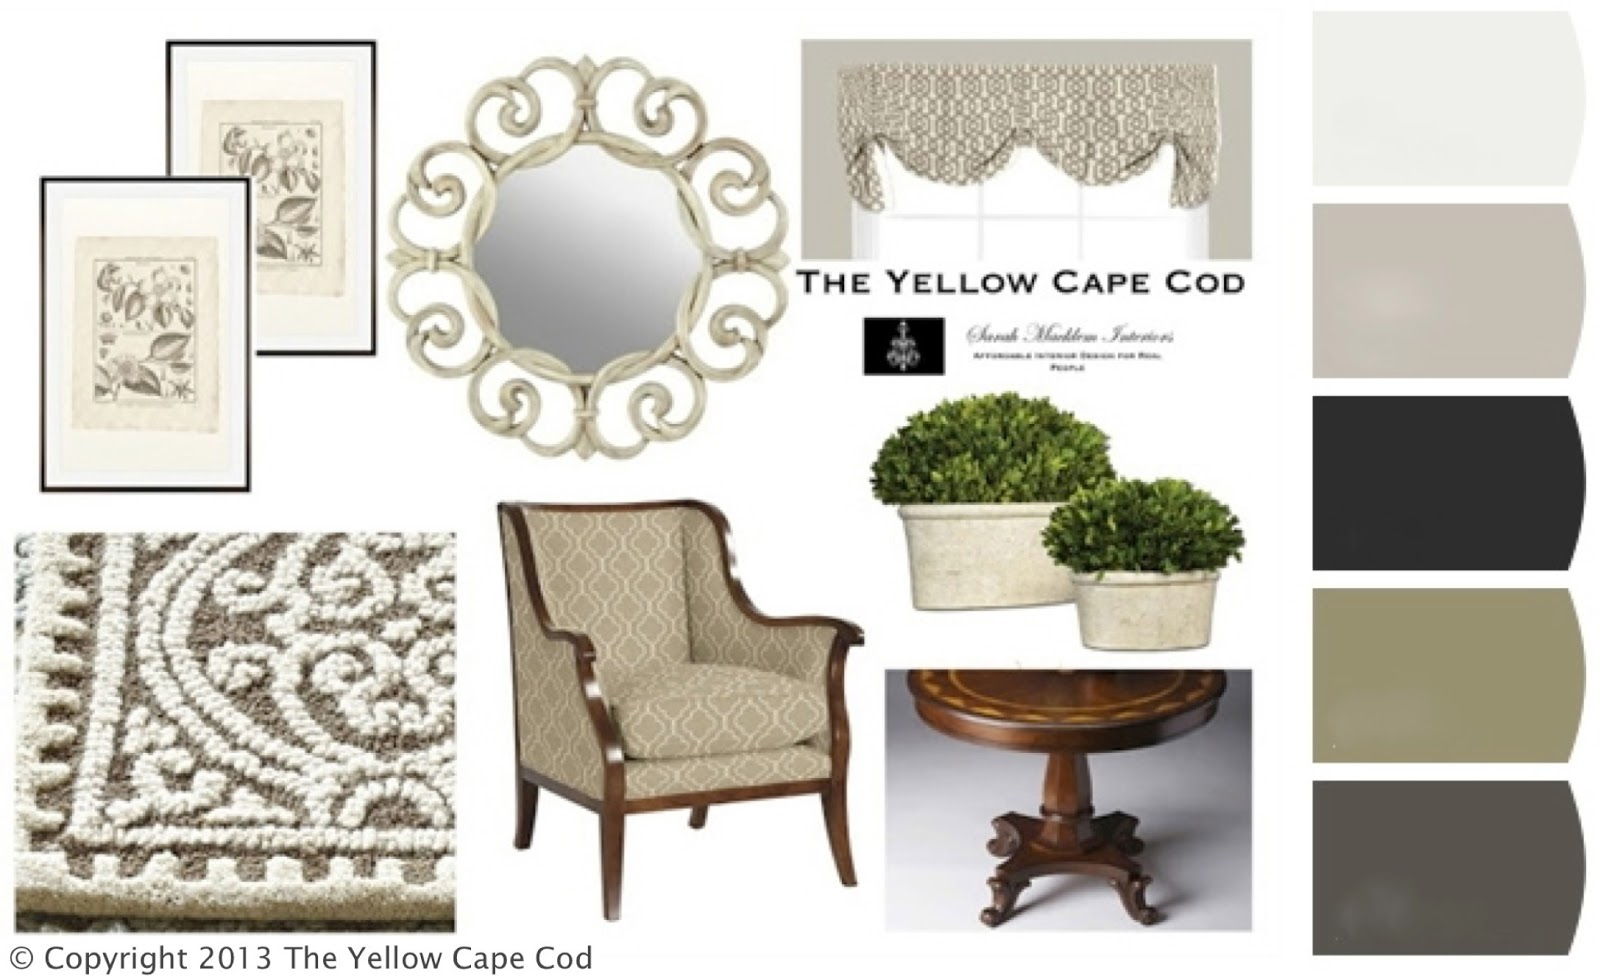 The Yellow Cape Cod: Understated Elegance~A Semi-Formal Foyer